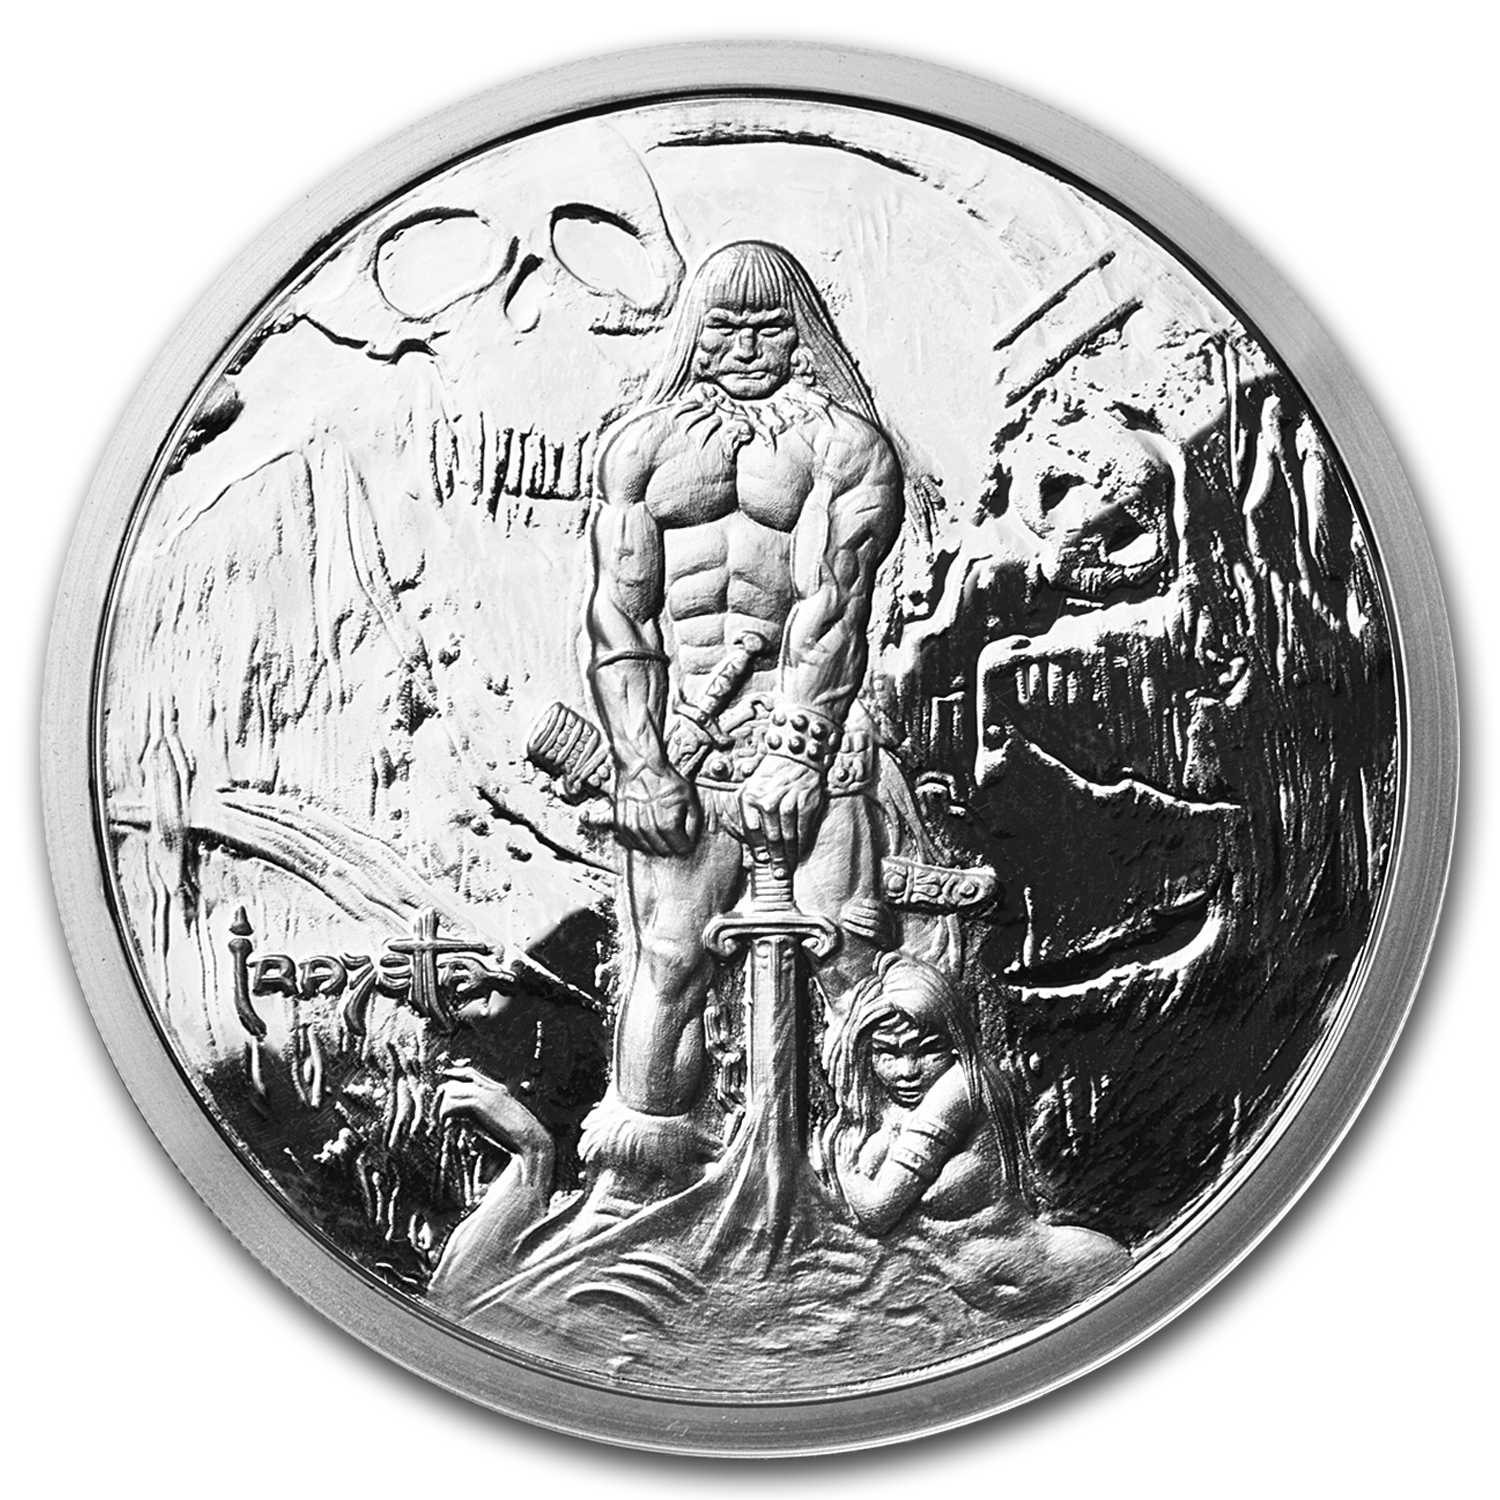 5 oz Silver Proof Round - Frank Frazetta (The Barbarian)